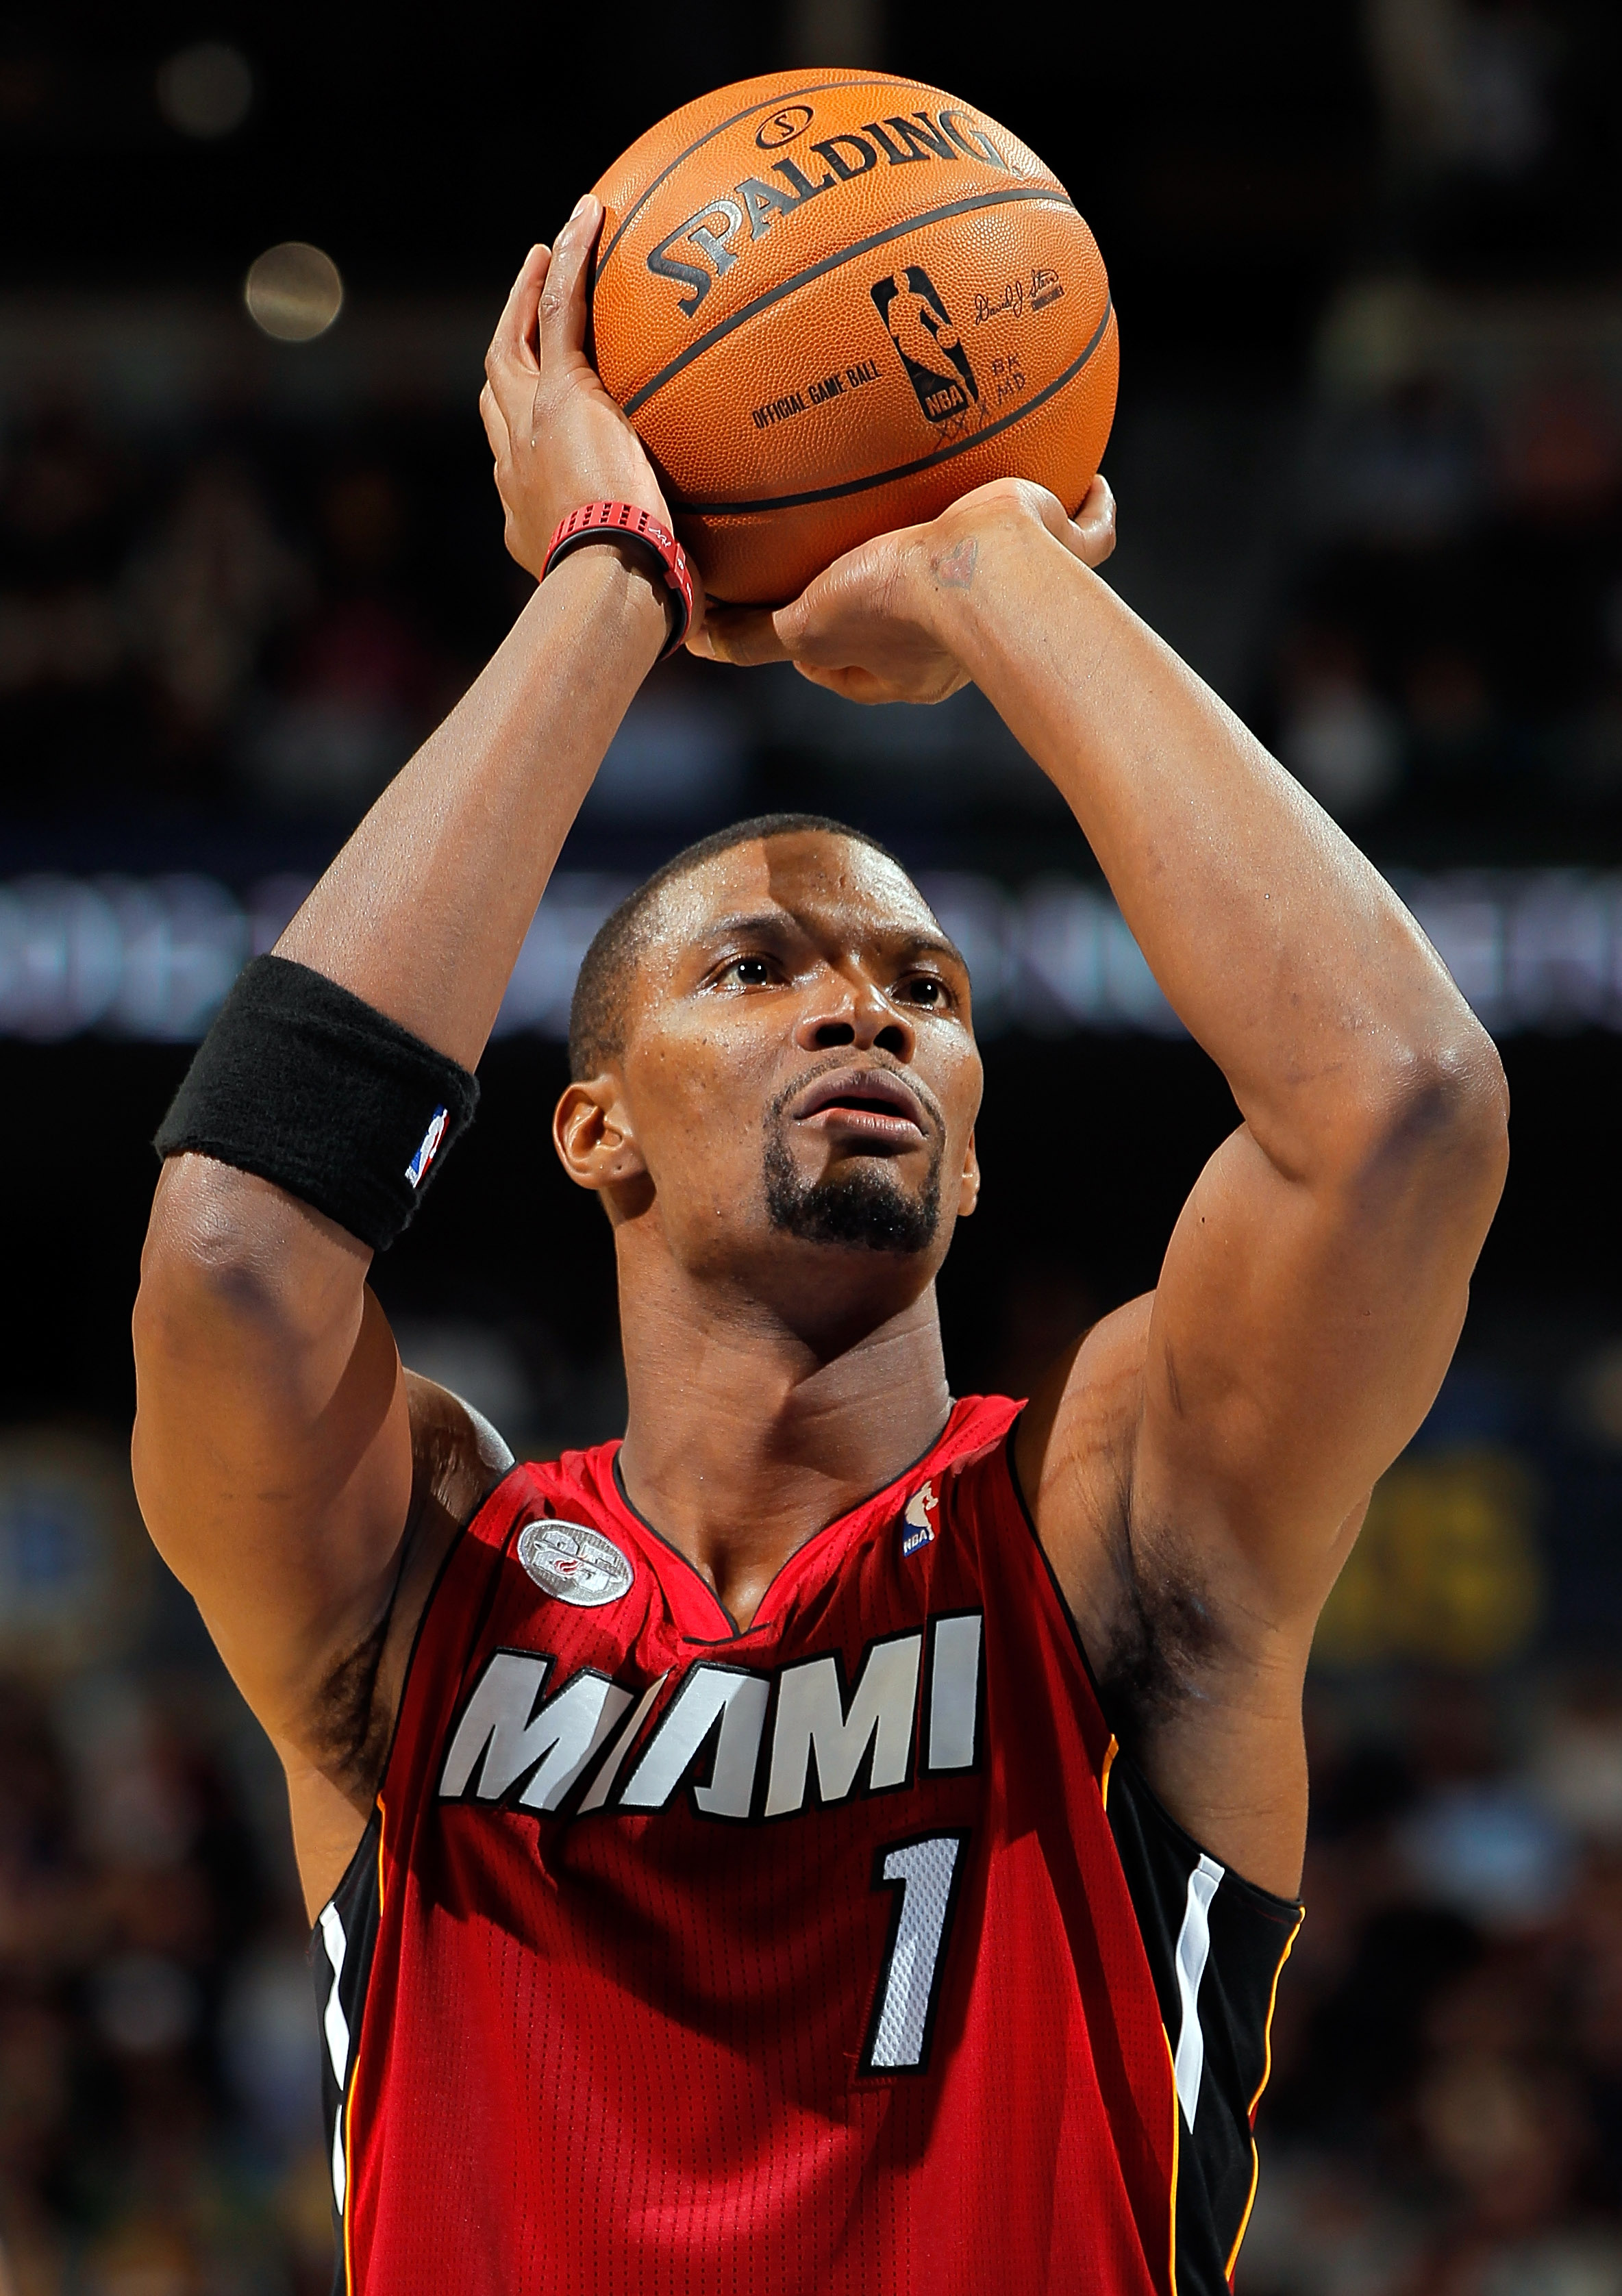 DENVER, CO - NOVEMBER 15:  Chris Bosh #1 of the Miami Heat takes a shot against the Denver Nuggets at the Pepsi Center on November 15, 2012 in Denver, Colorado. The Heat defeated the Nuggets 98-93. NOTE TO USER: User expressly acknowledges and agrees that